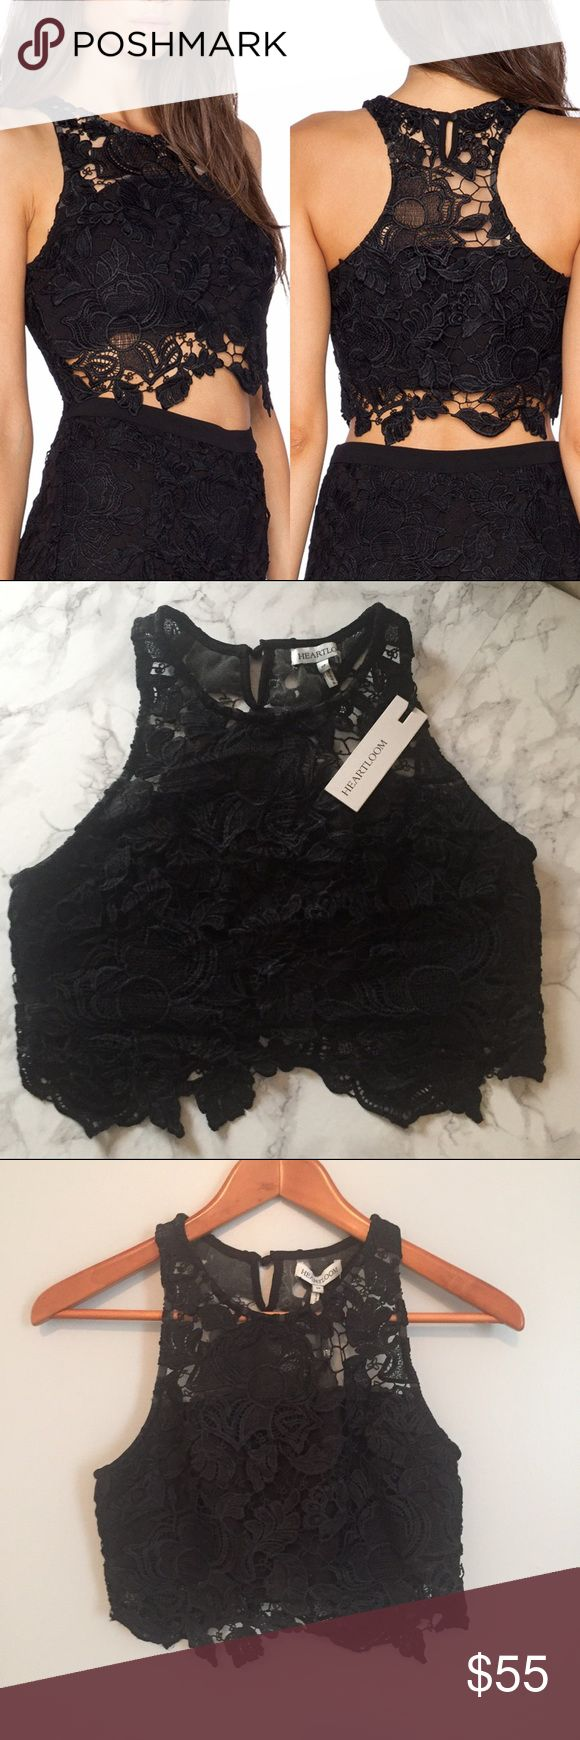 Heartloom lace crop top Beautiful black lace crop top from Heartloom.  New with tags! Measurements happily given upon request!  No trades. Reasonable offers welcome Note: 20% off bundles of 2+ items in my closet! Heartloom Tops Crop Tops